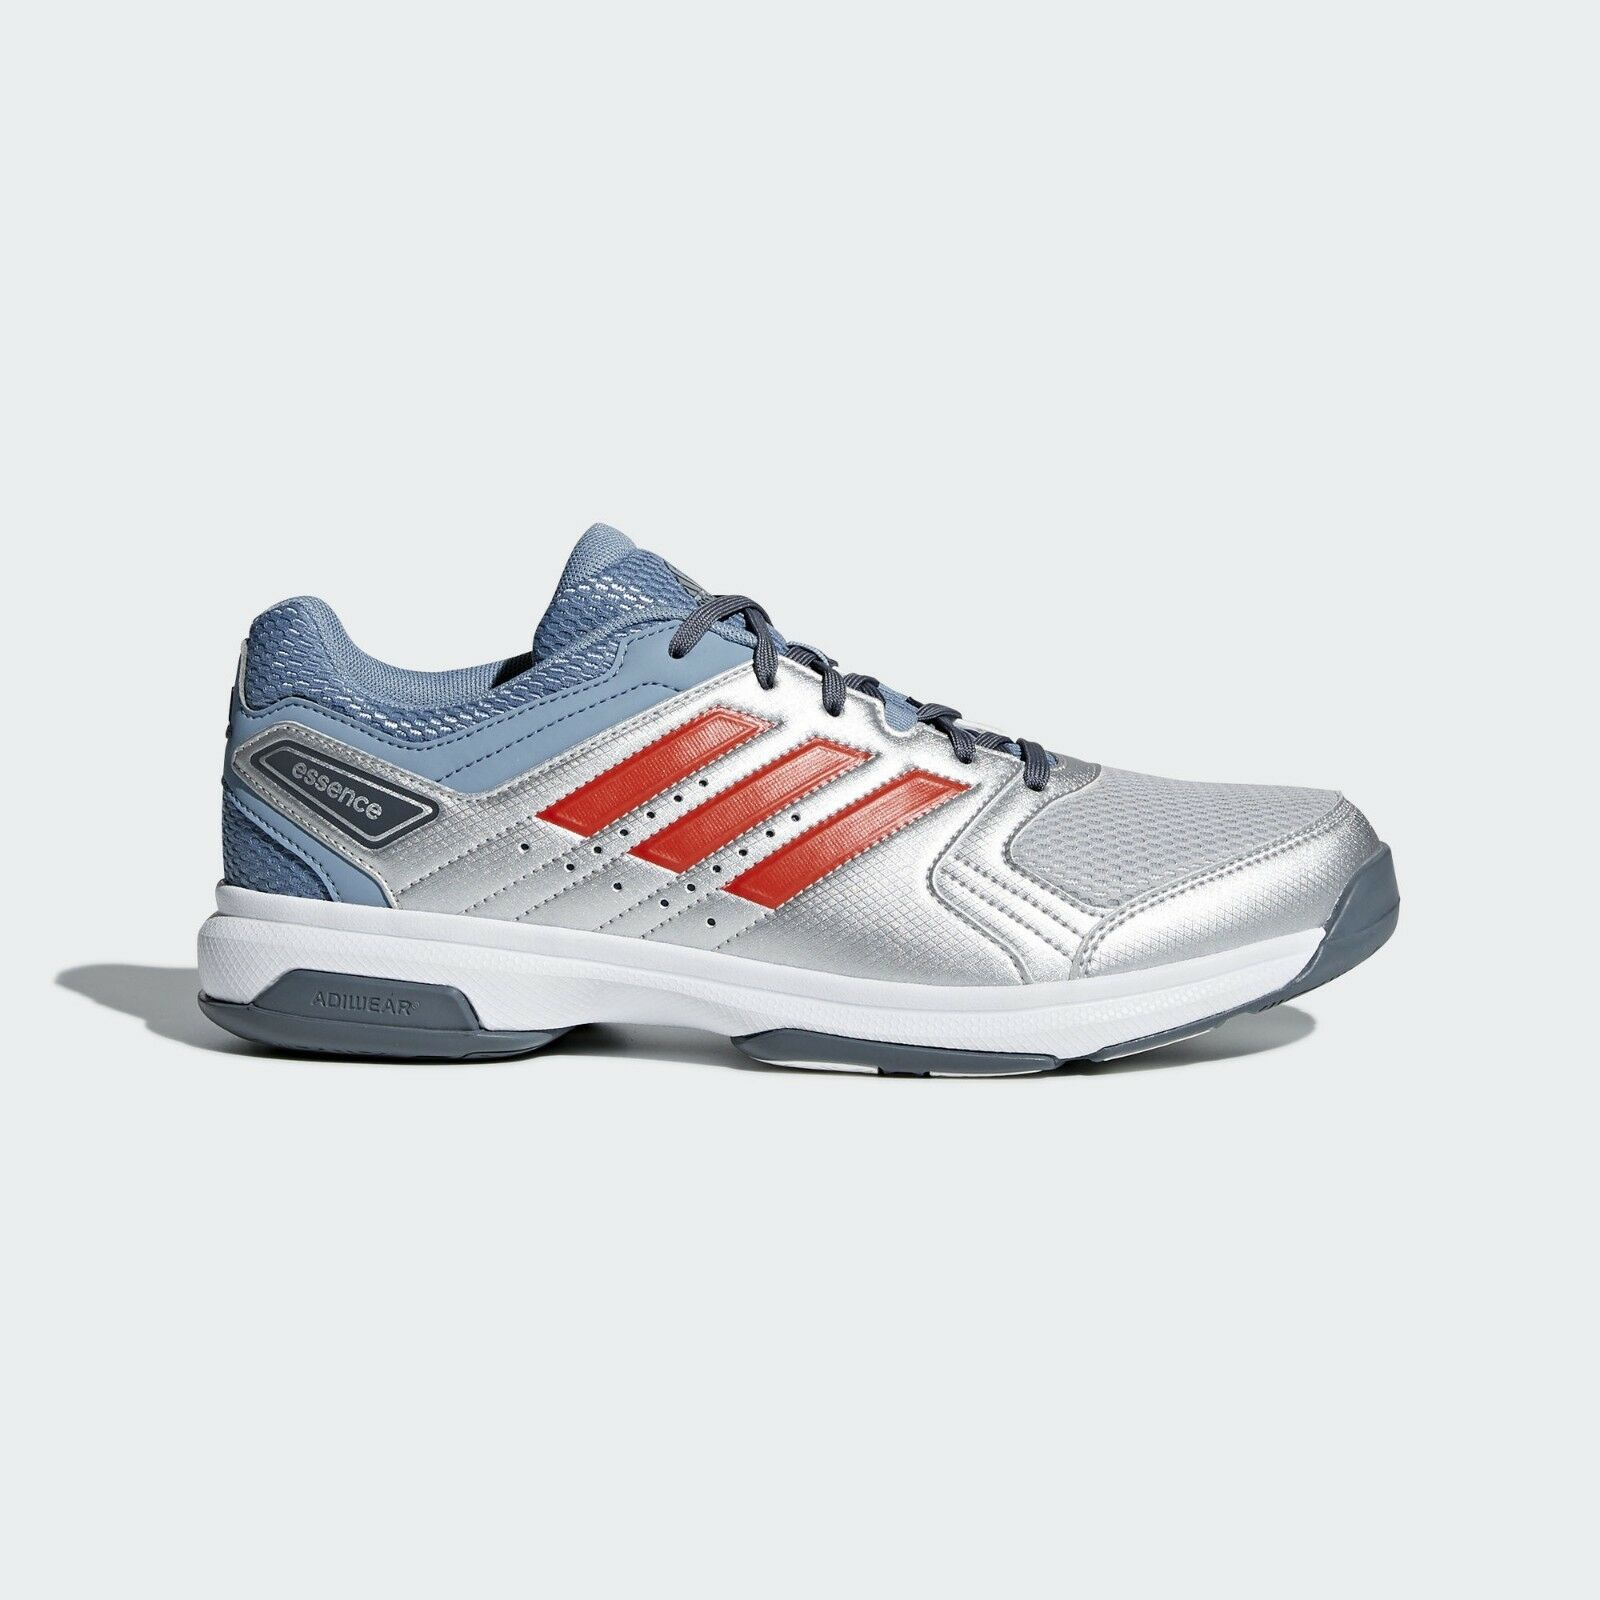 Adidas Essence Schuhes for Indoor Sports Handball Basketball - Silver and ROT